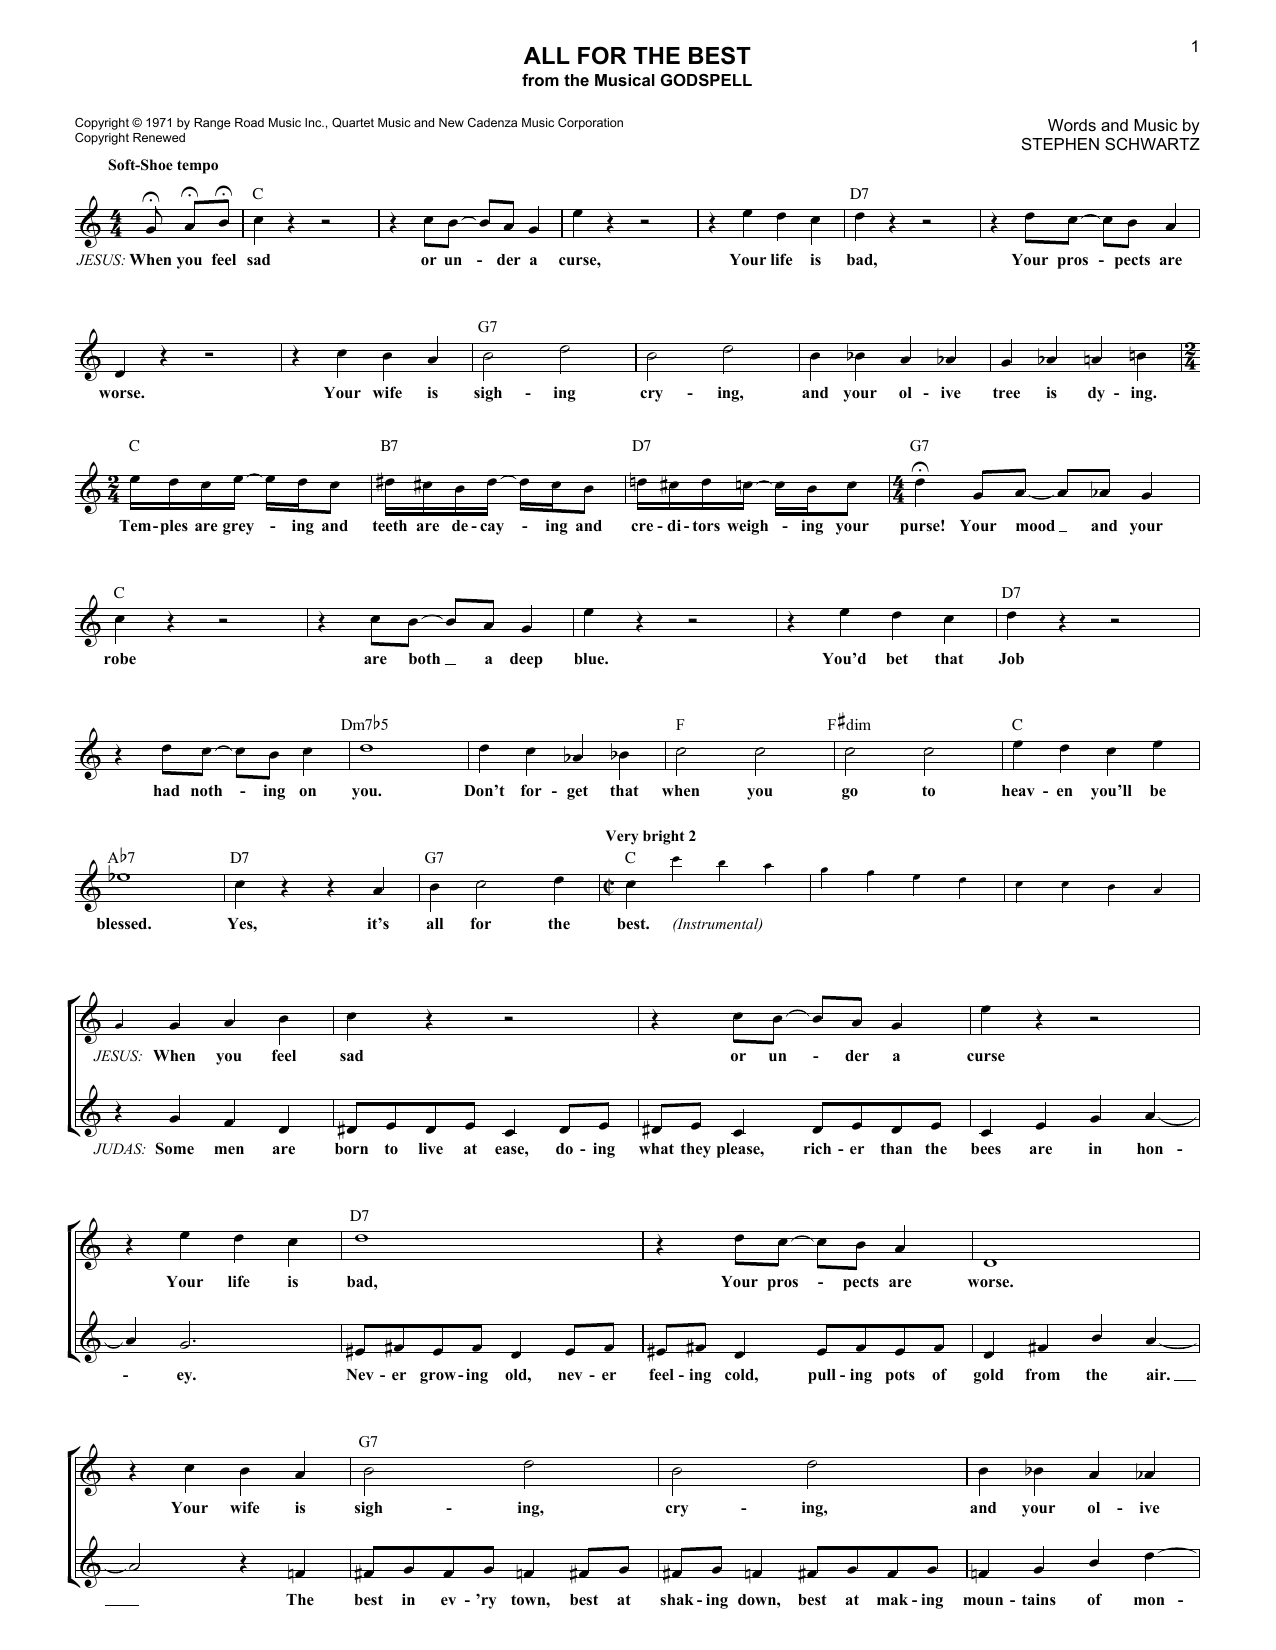 Stephen Schwartz All For The Best sheet music notes and chords. Download Printable PDF.